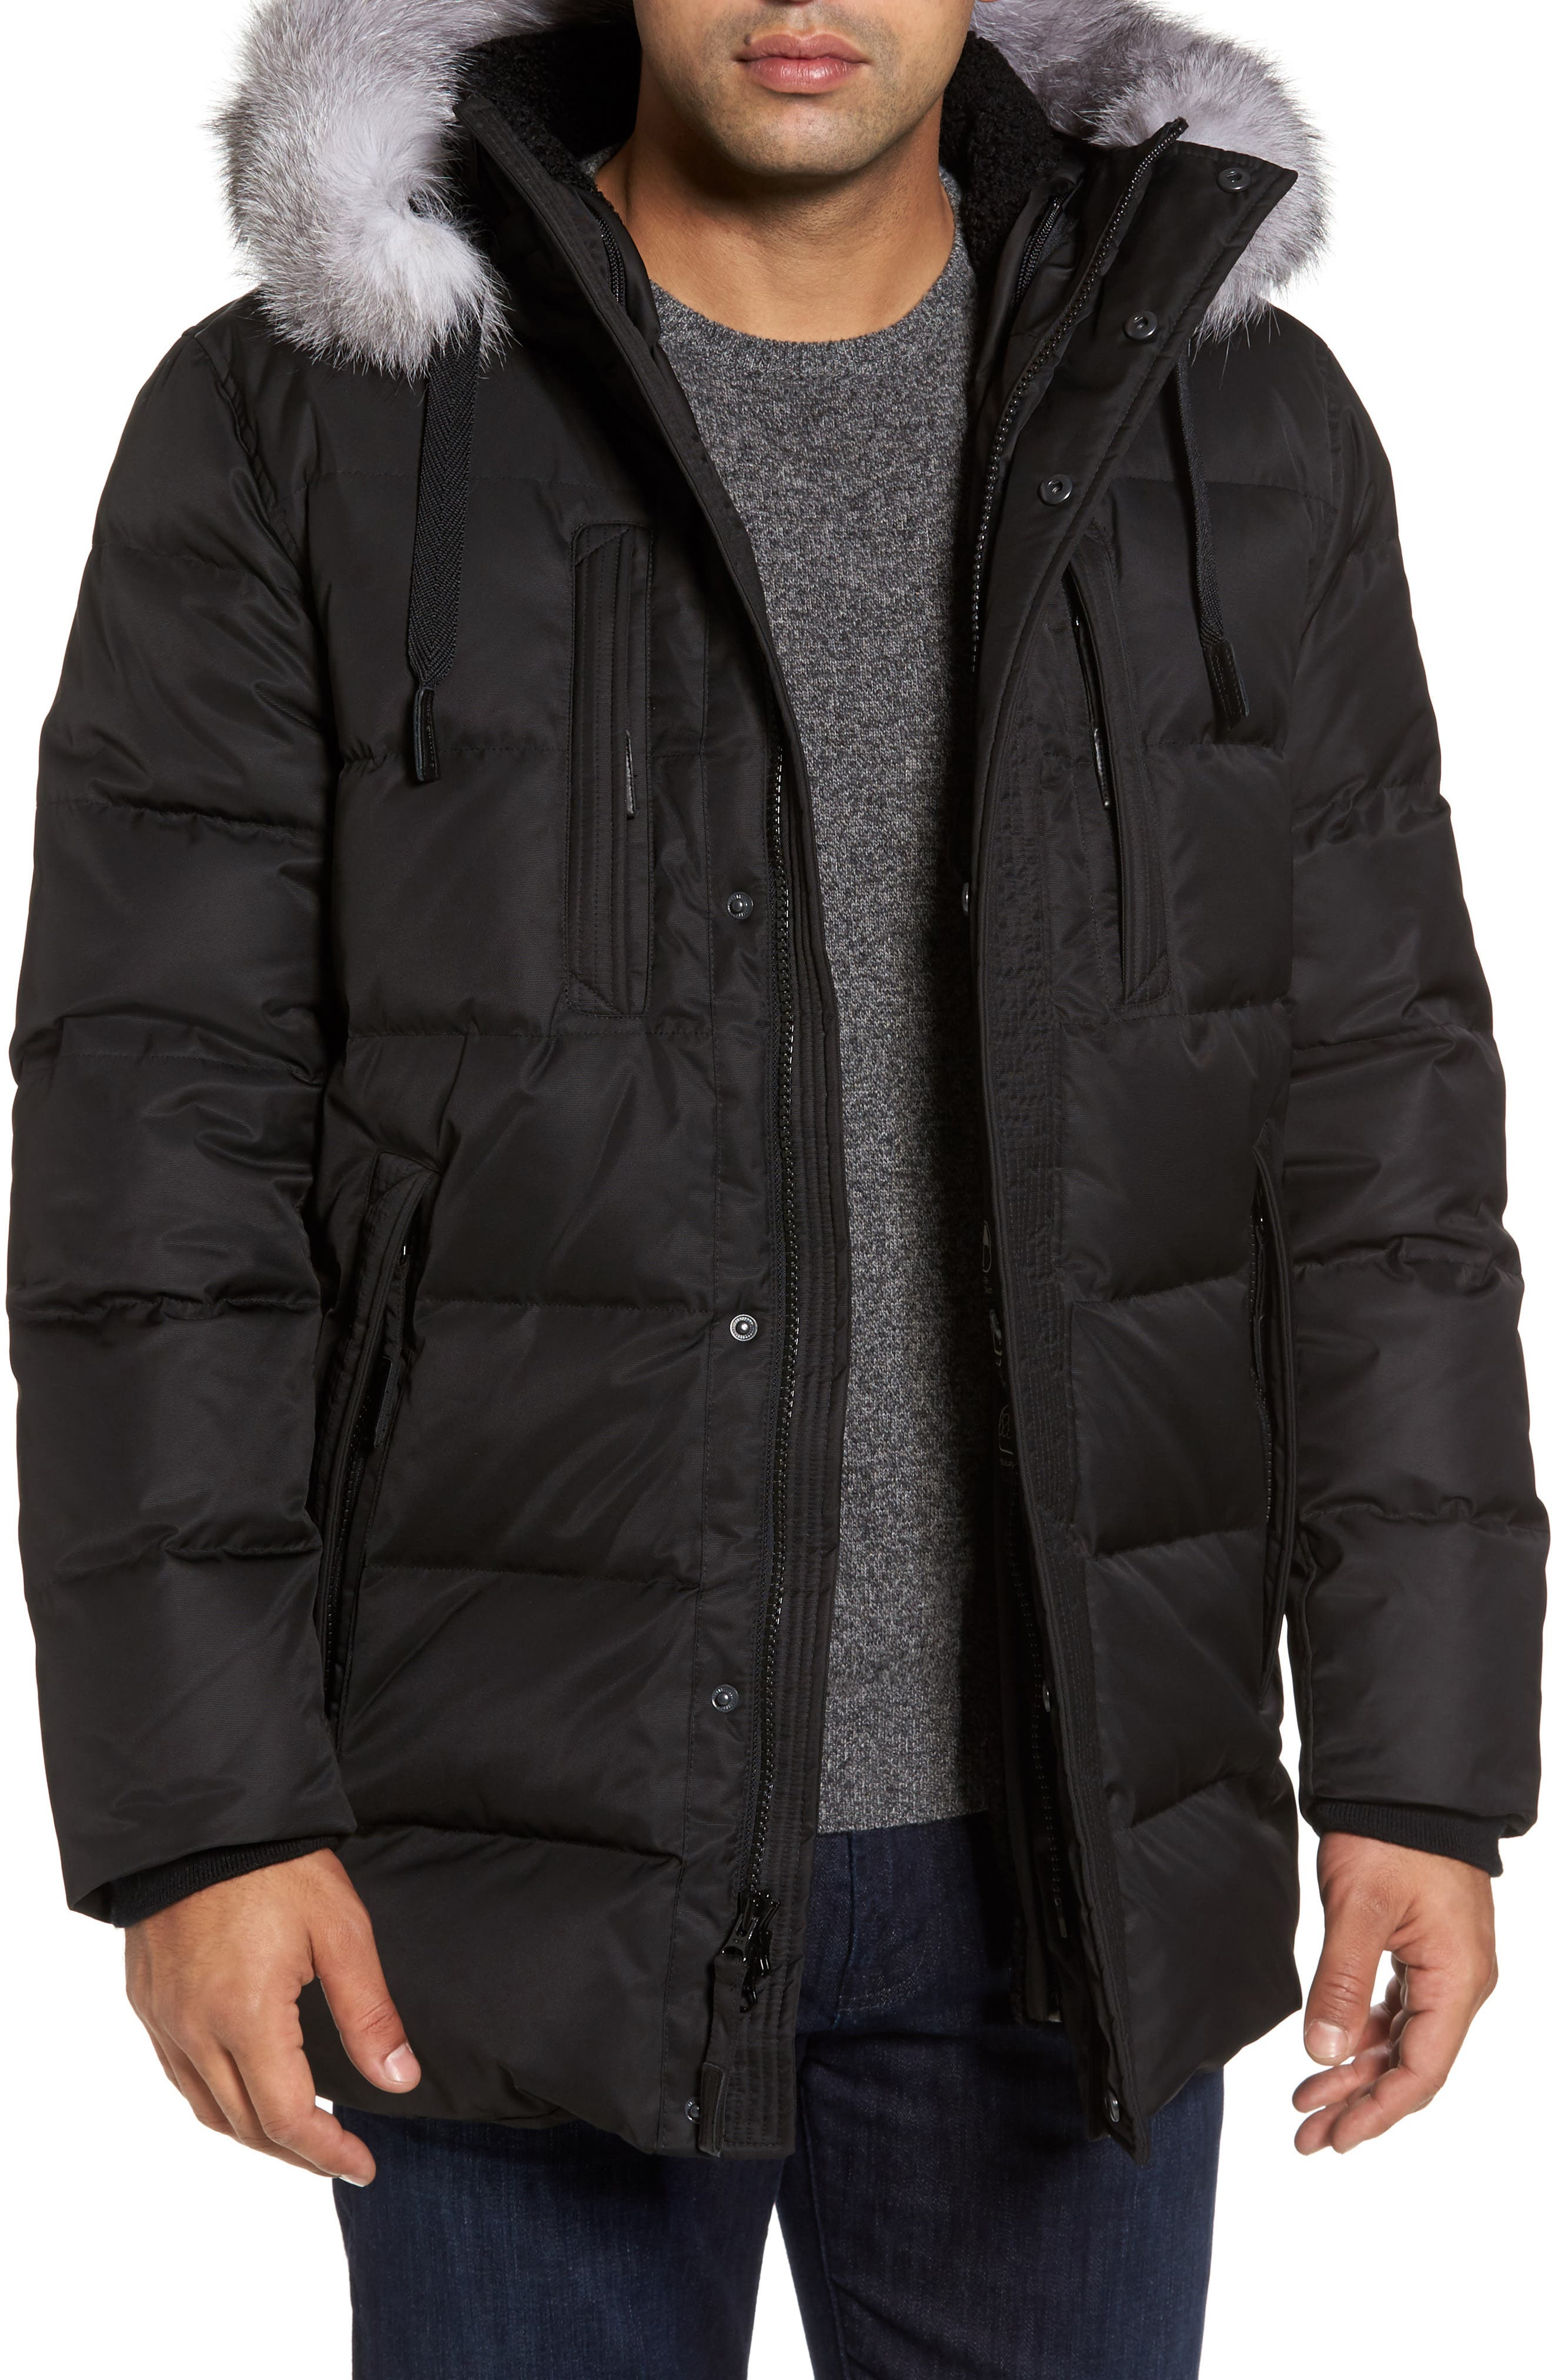 Alternate Image 1 Selected - Andrew Marc Quilted Down Jacket with Genuine Fox Fur Trim